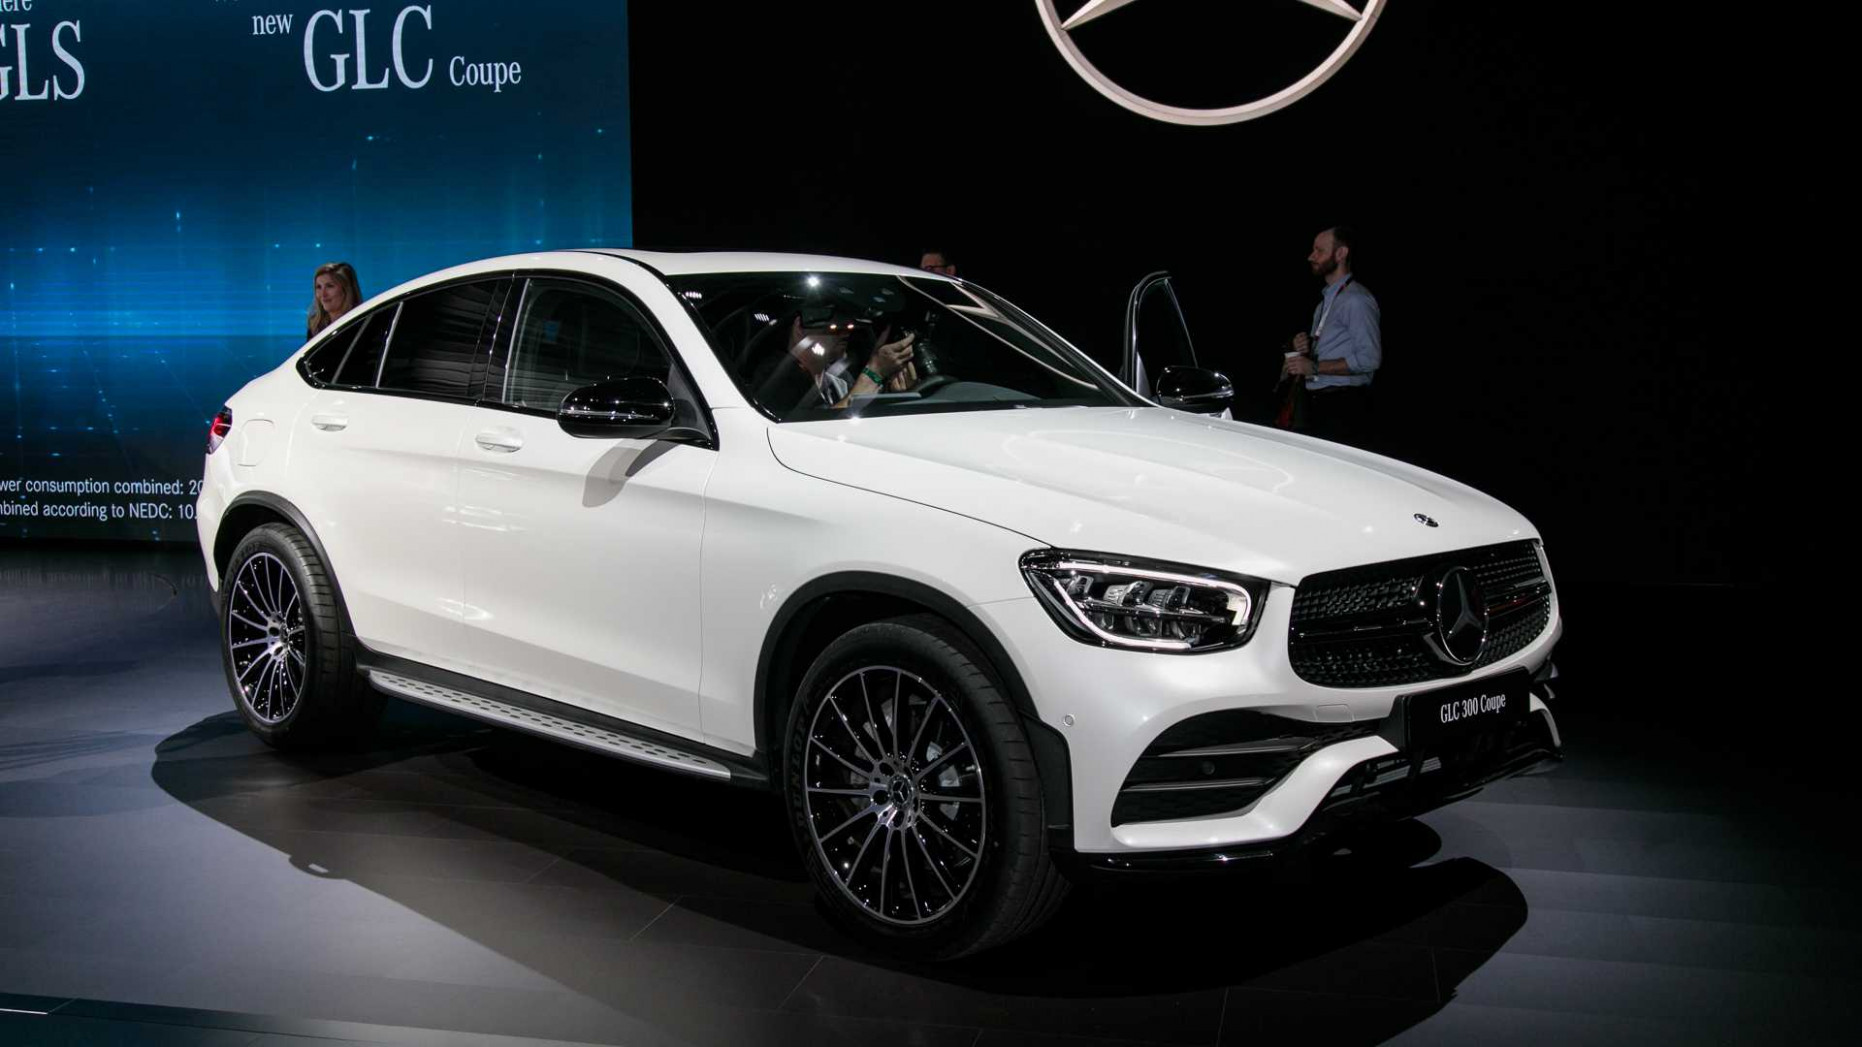 7 Mercedes-Benz GLC Coupe Gets Refreshed Face, More Power [UPDATE]